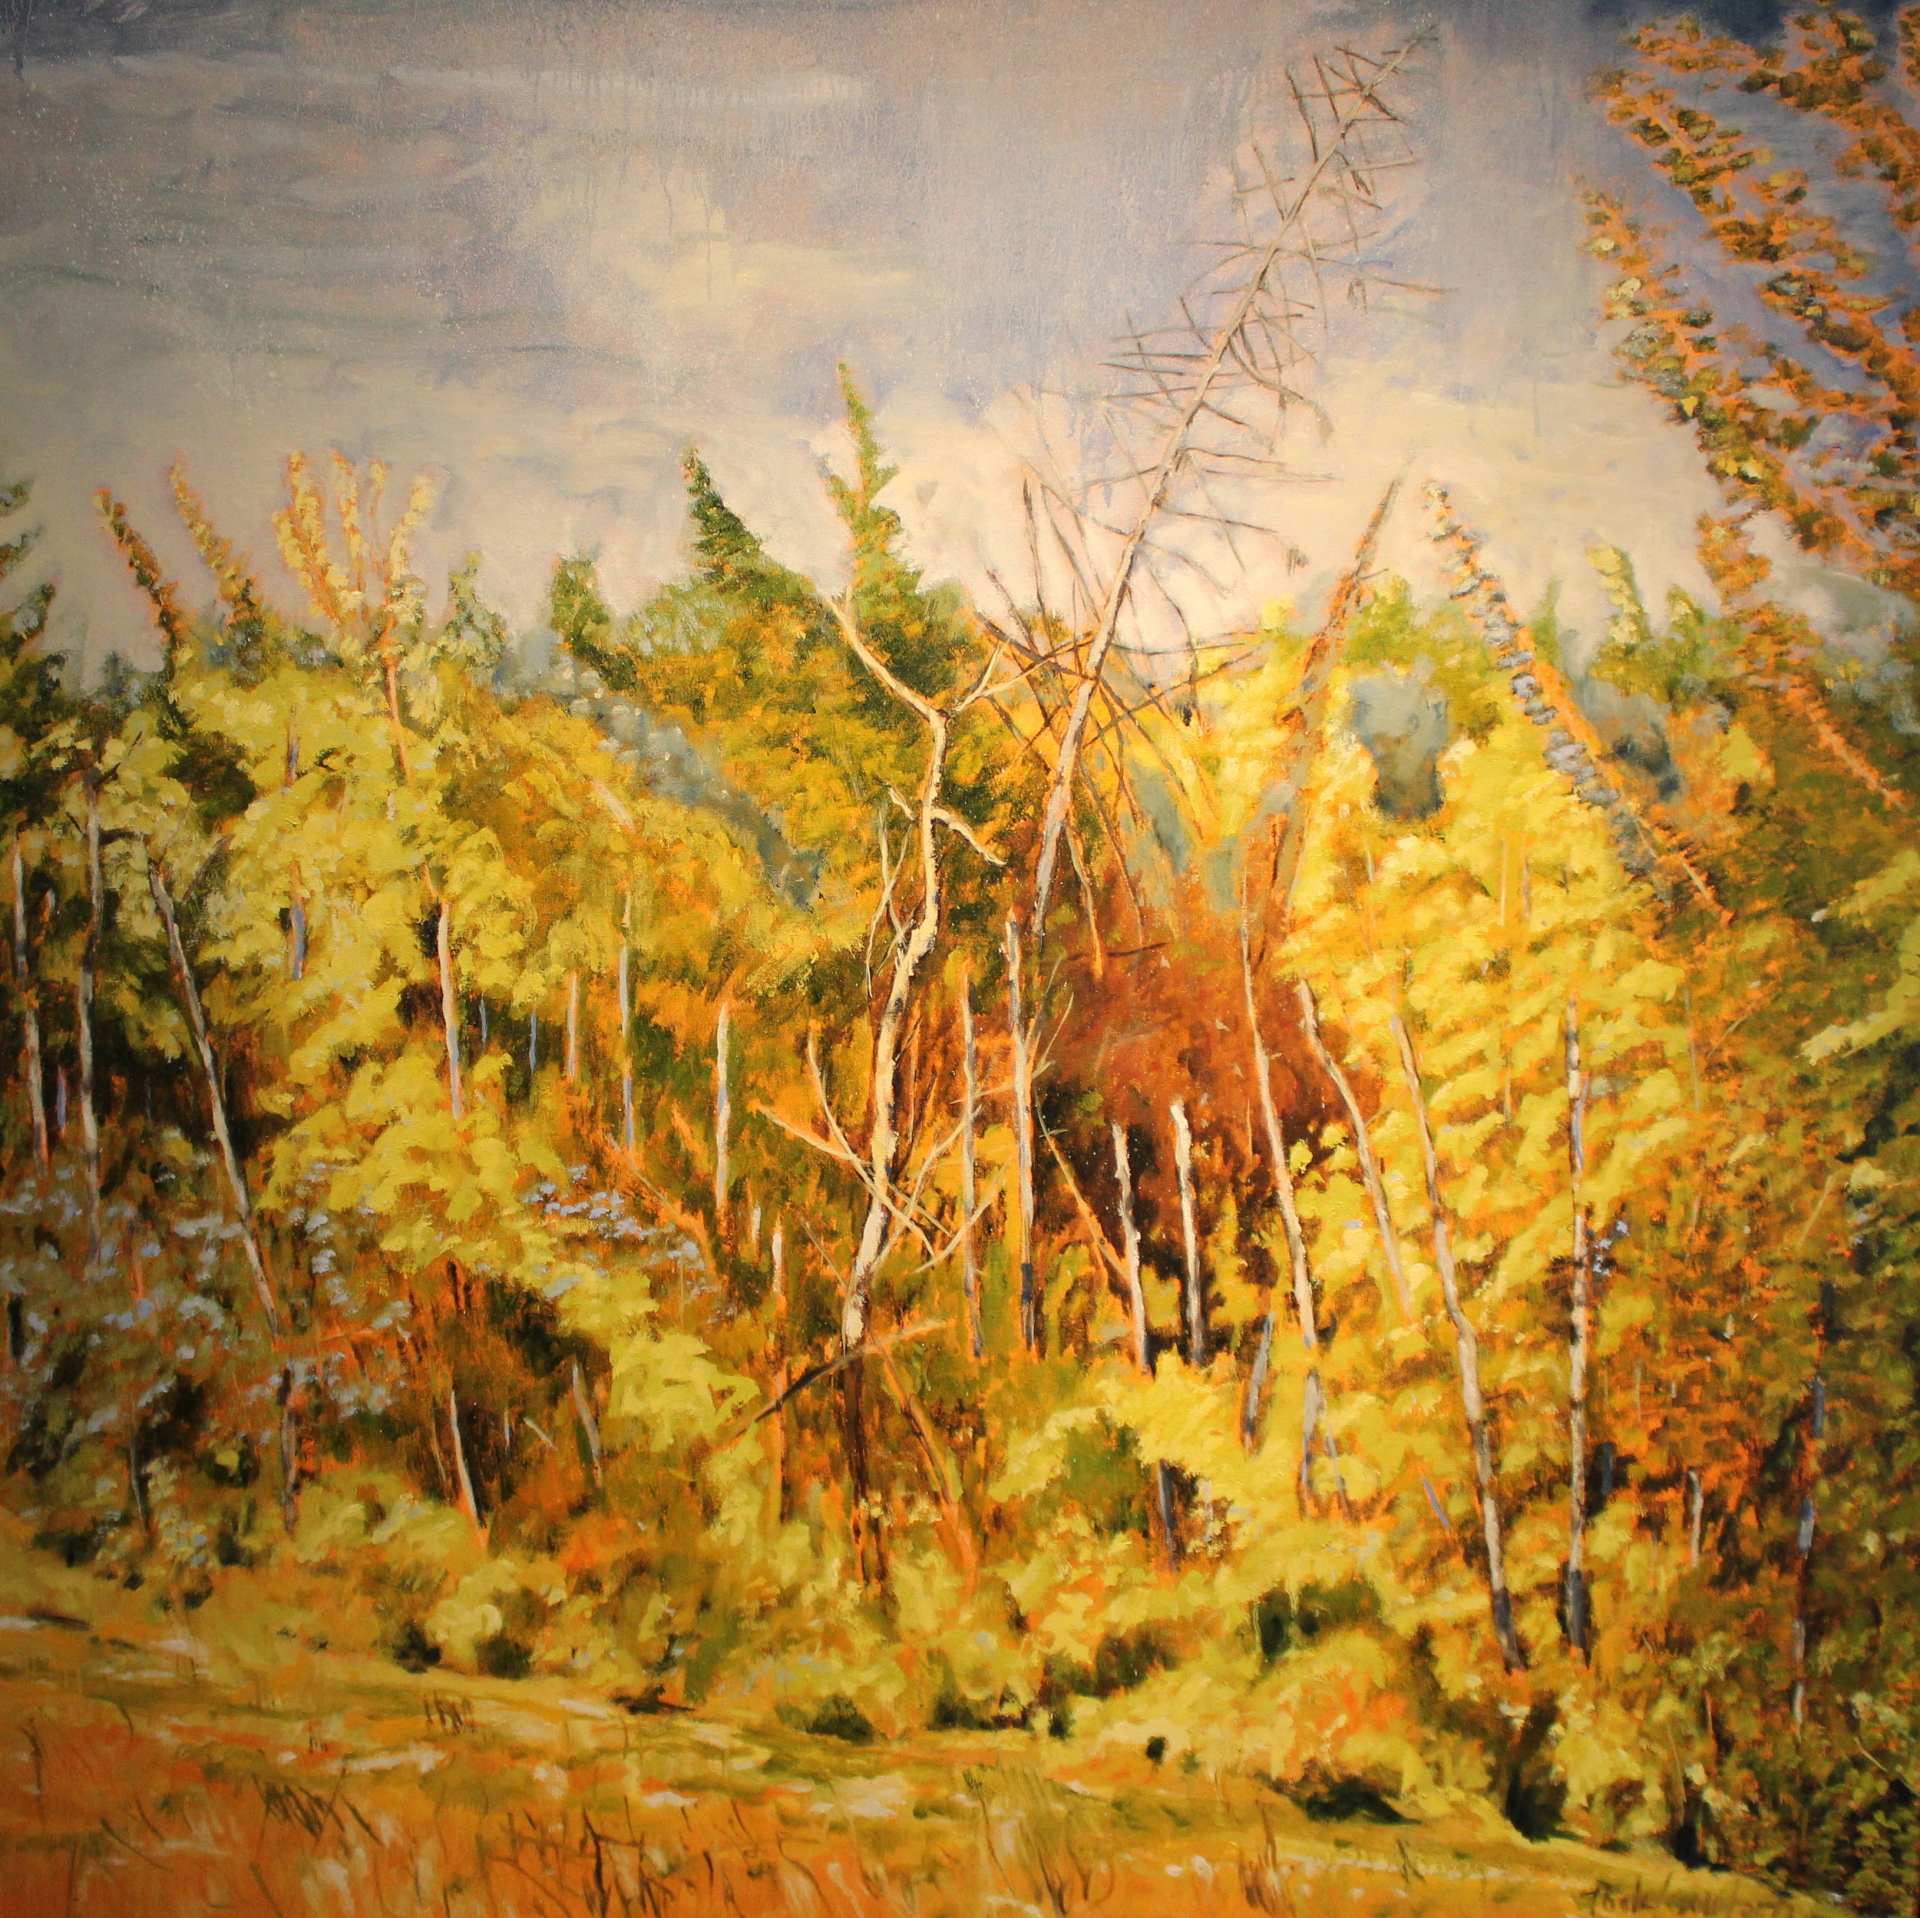 RIVER VALLEY GLOW - 49X49 - OIL ON CANVAS - 2012